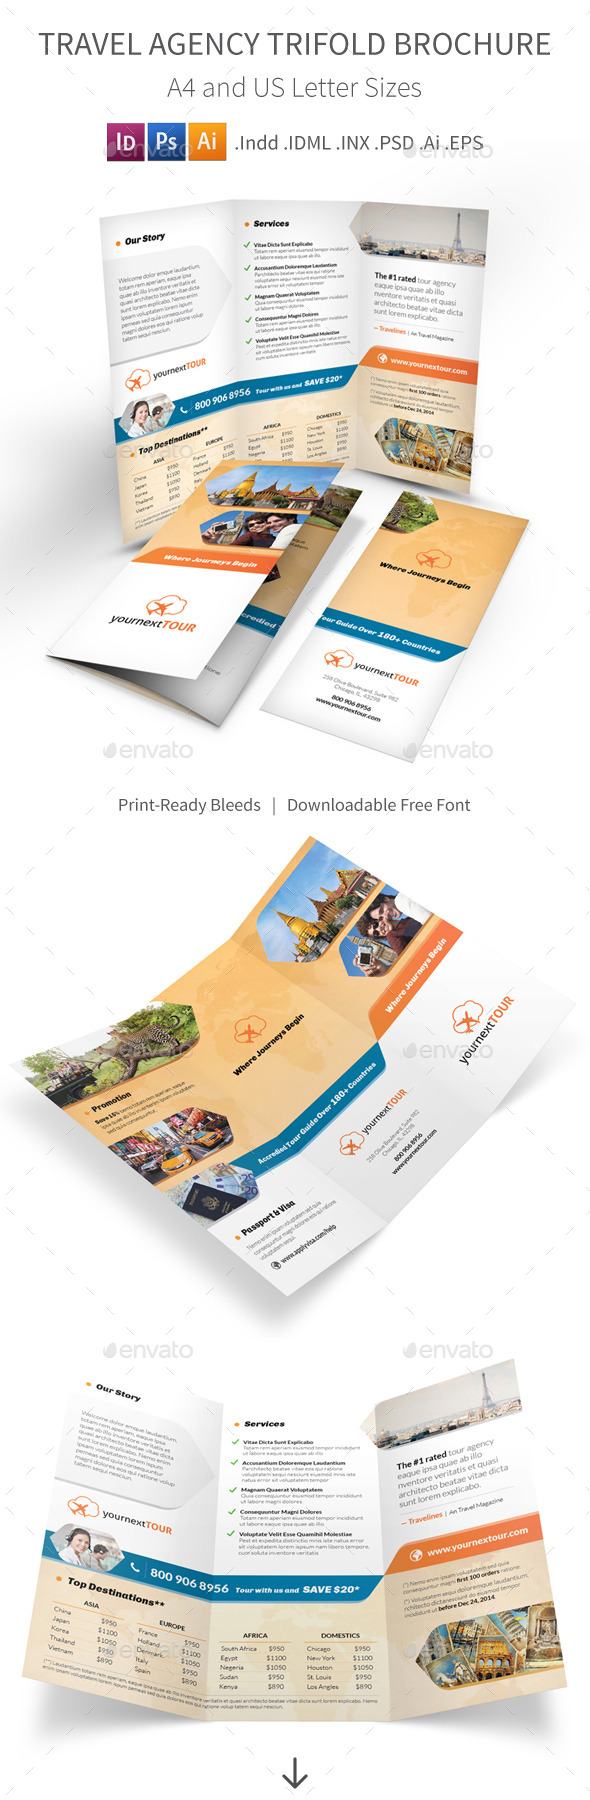 Travel Agency Trifold Brochure - Informational Brochures